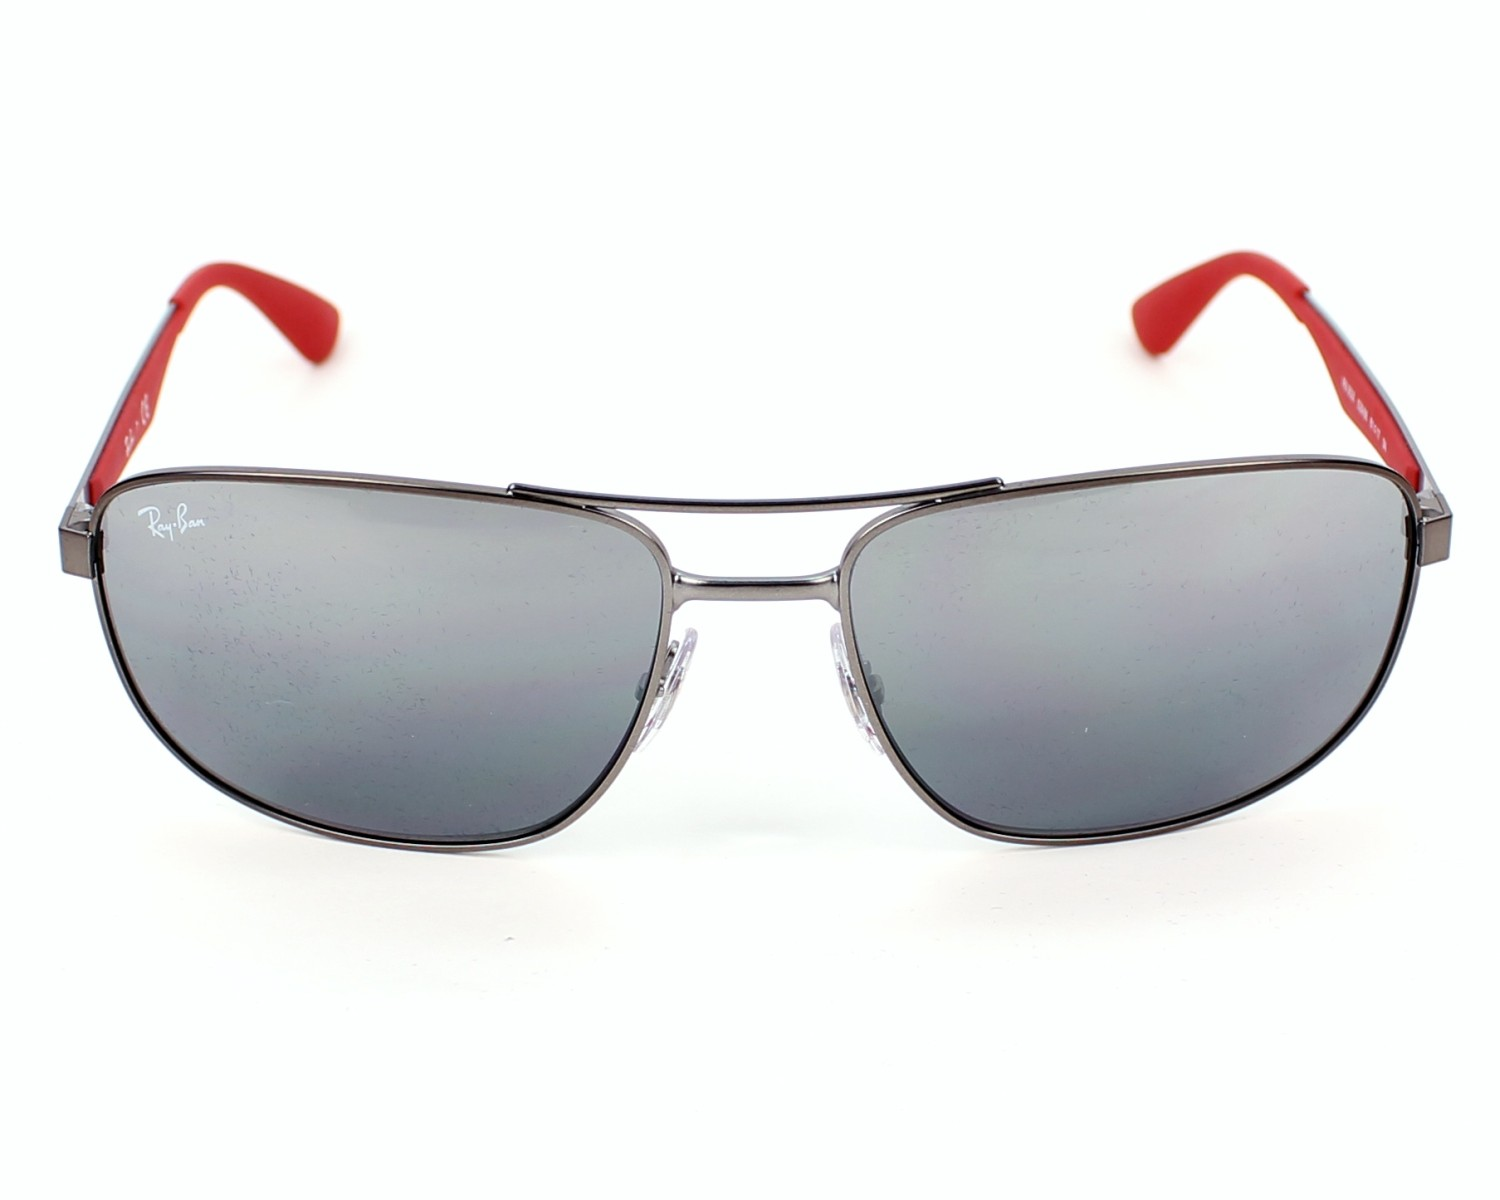 ccde5b8c4db Sunglasses Ray-Ban RB-3528 029 88 58-17 Gun Red front